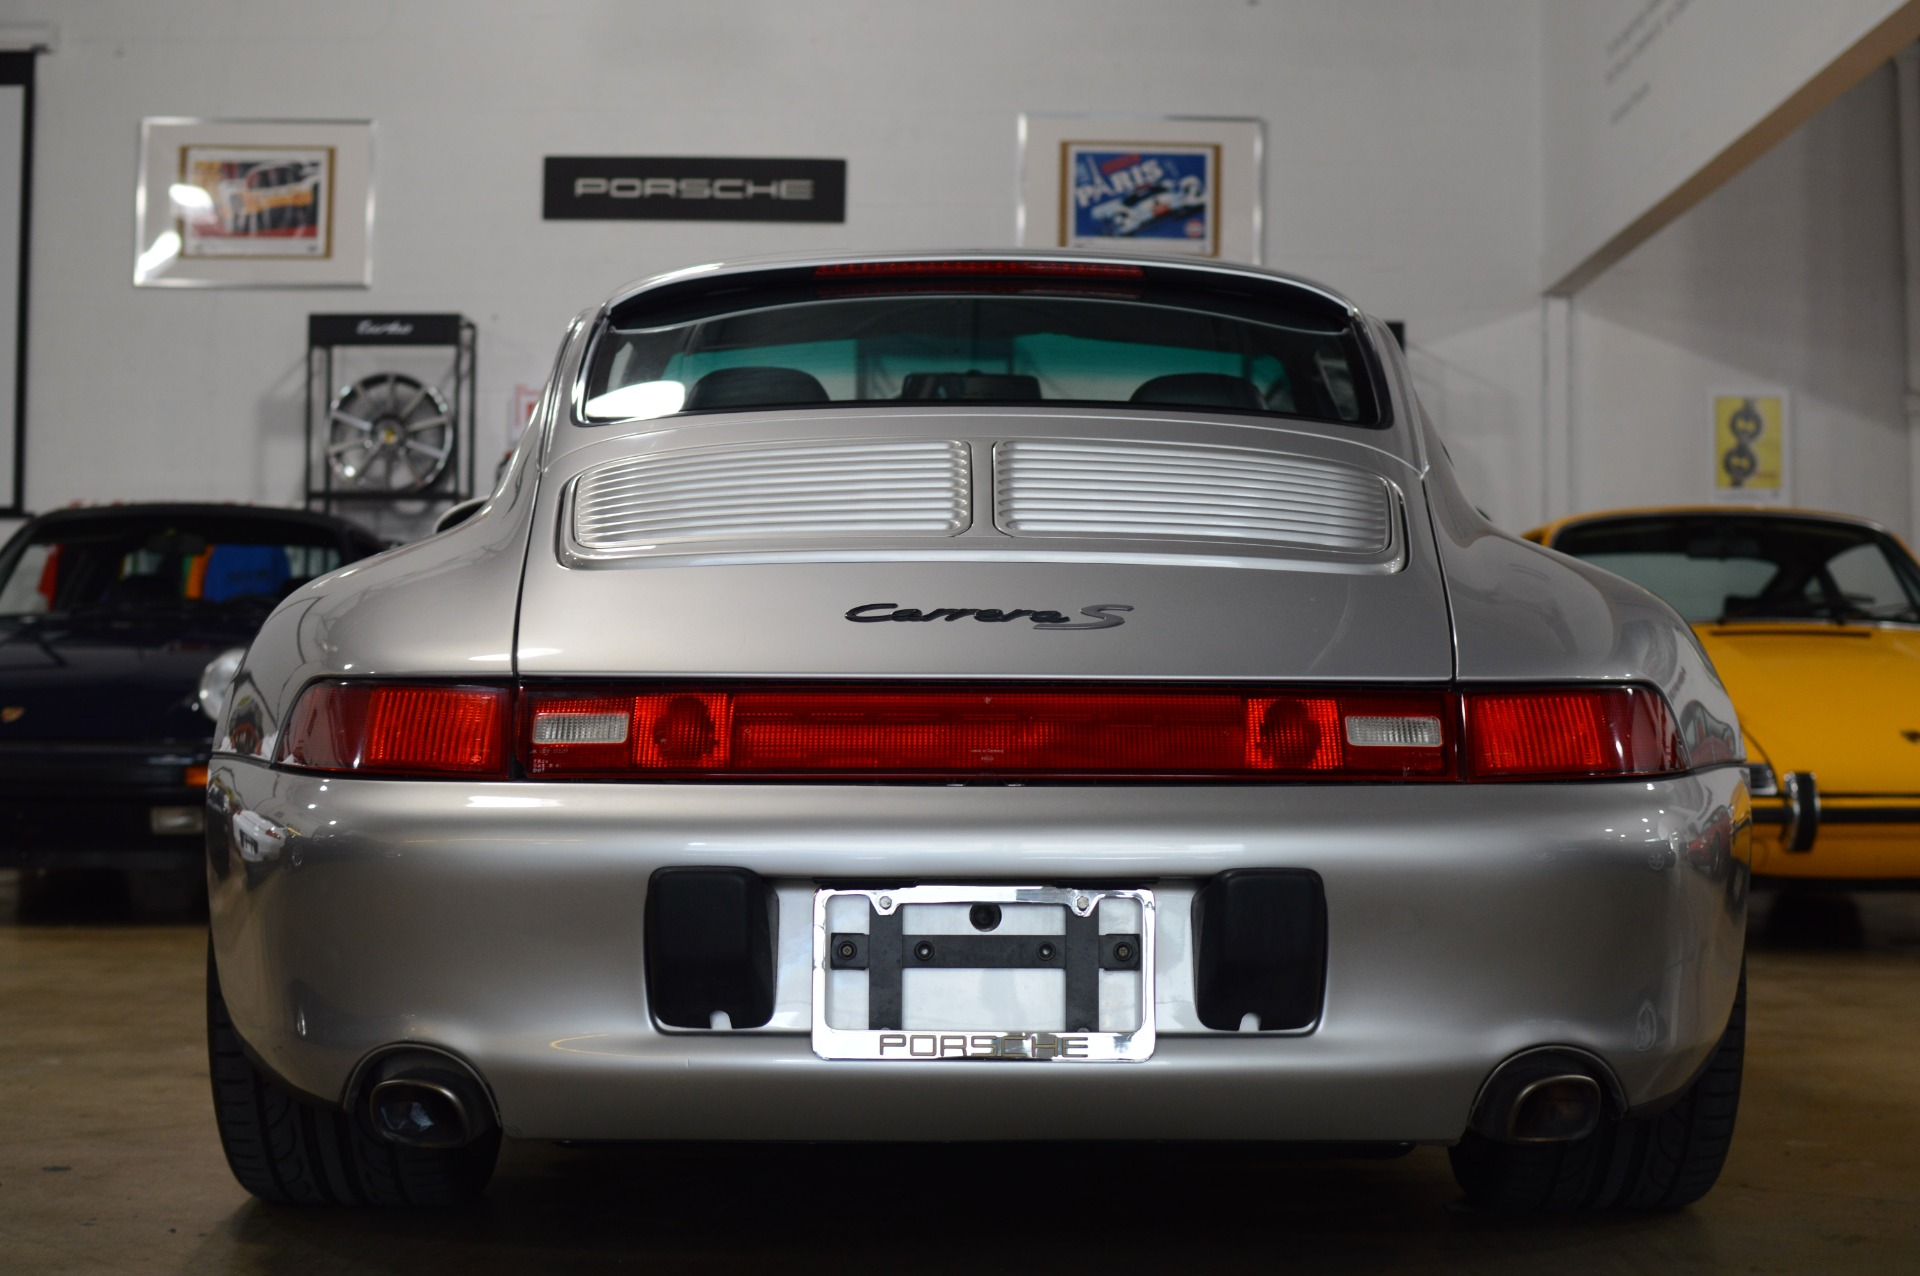 Used 1998 Porsche 993 S Carrera S